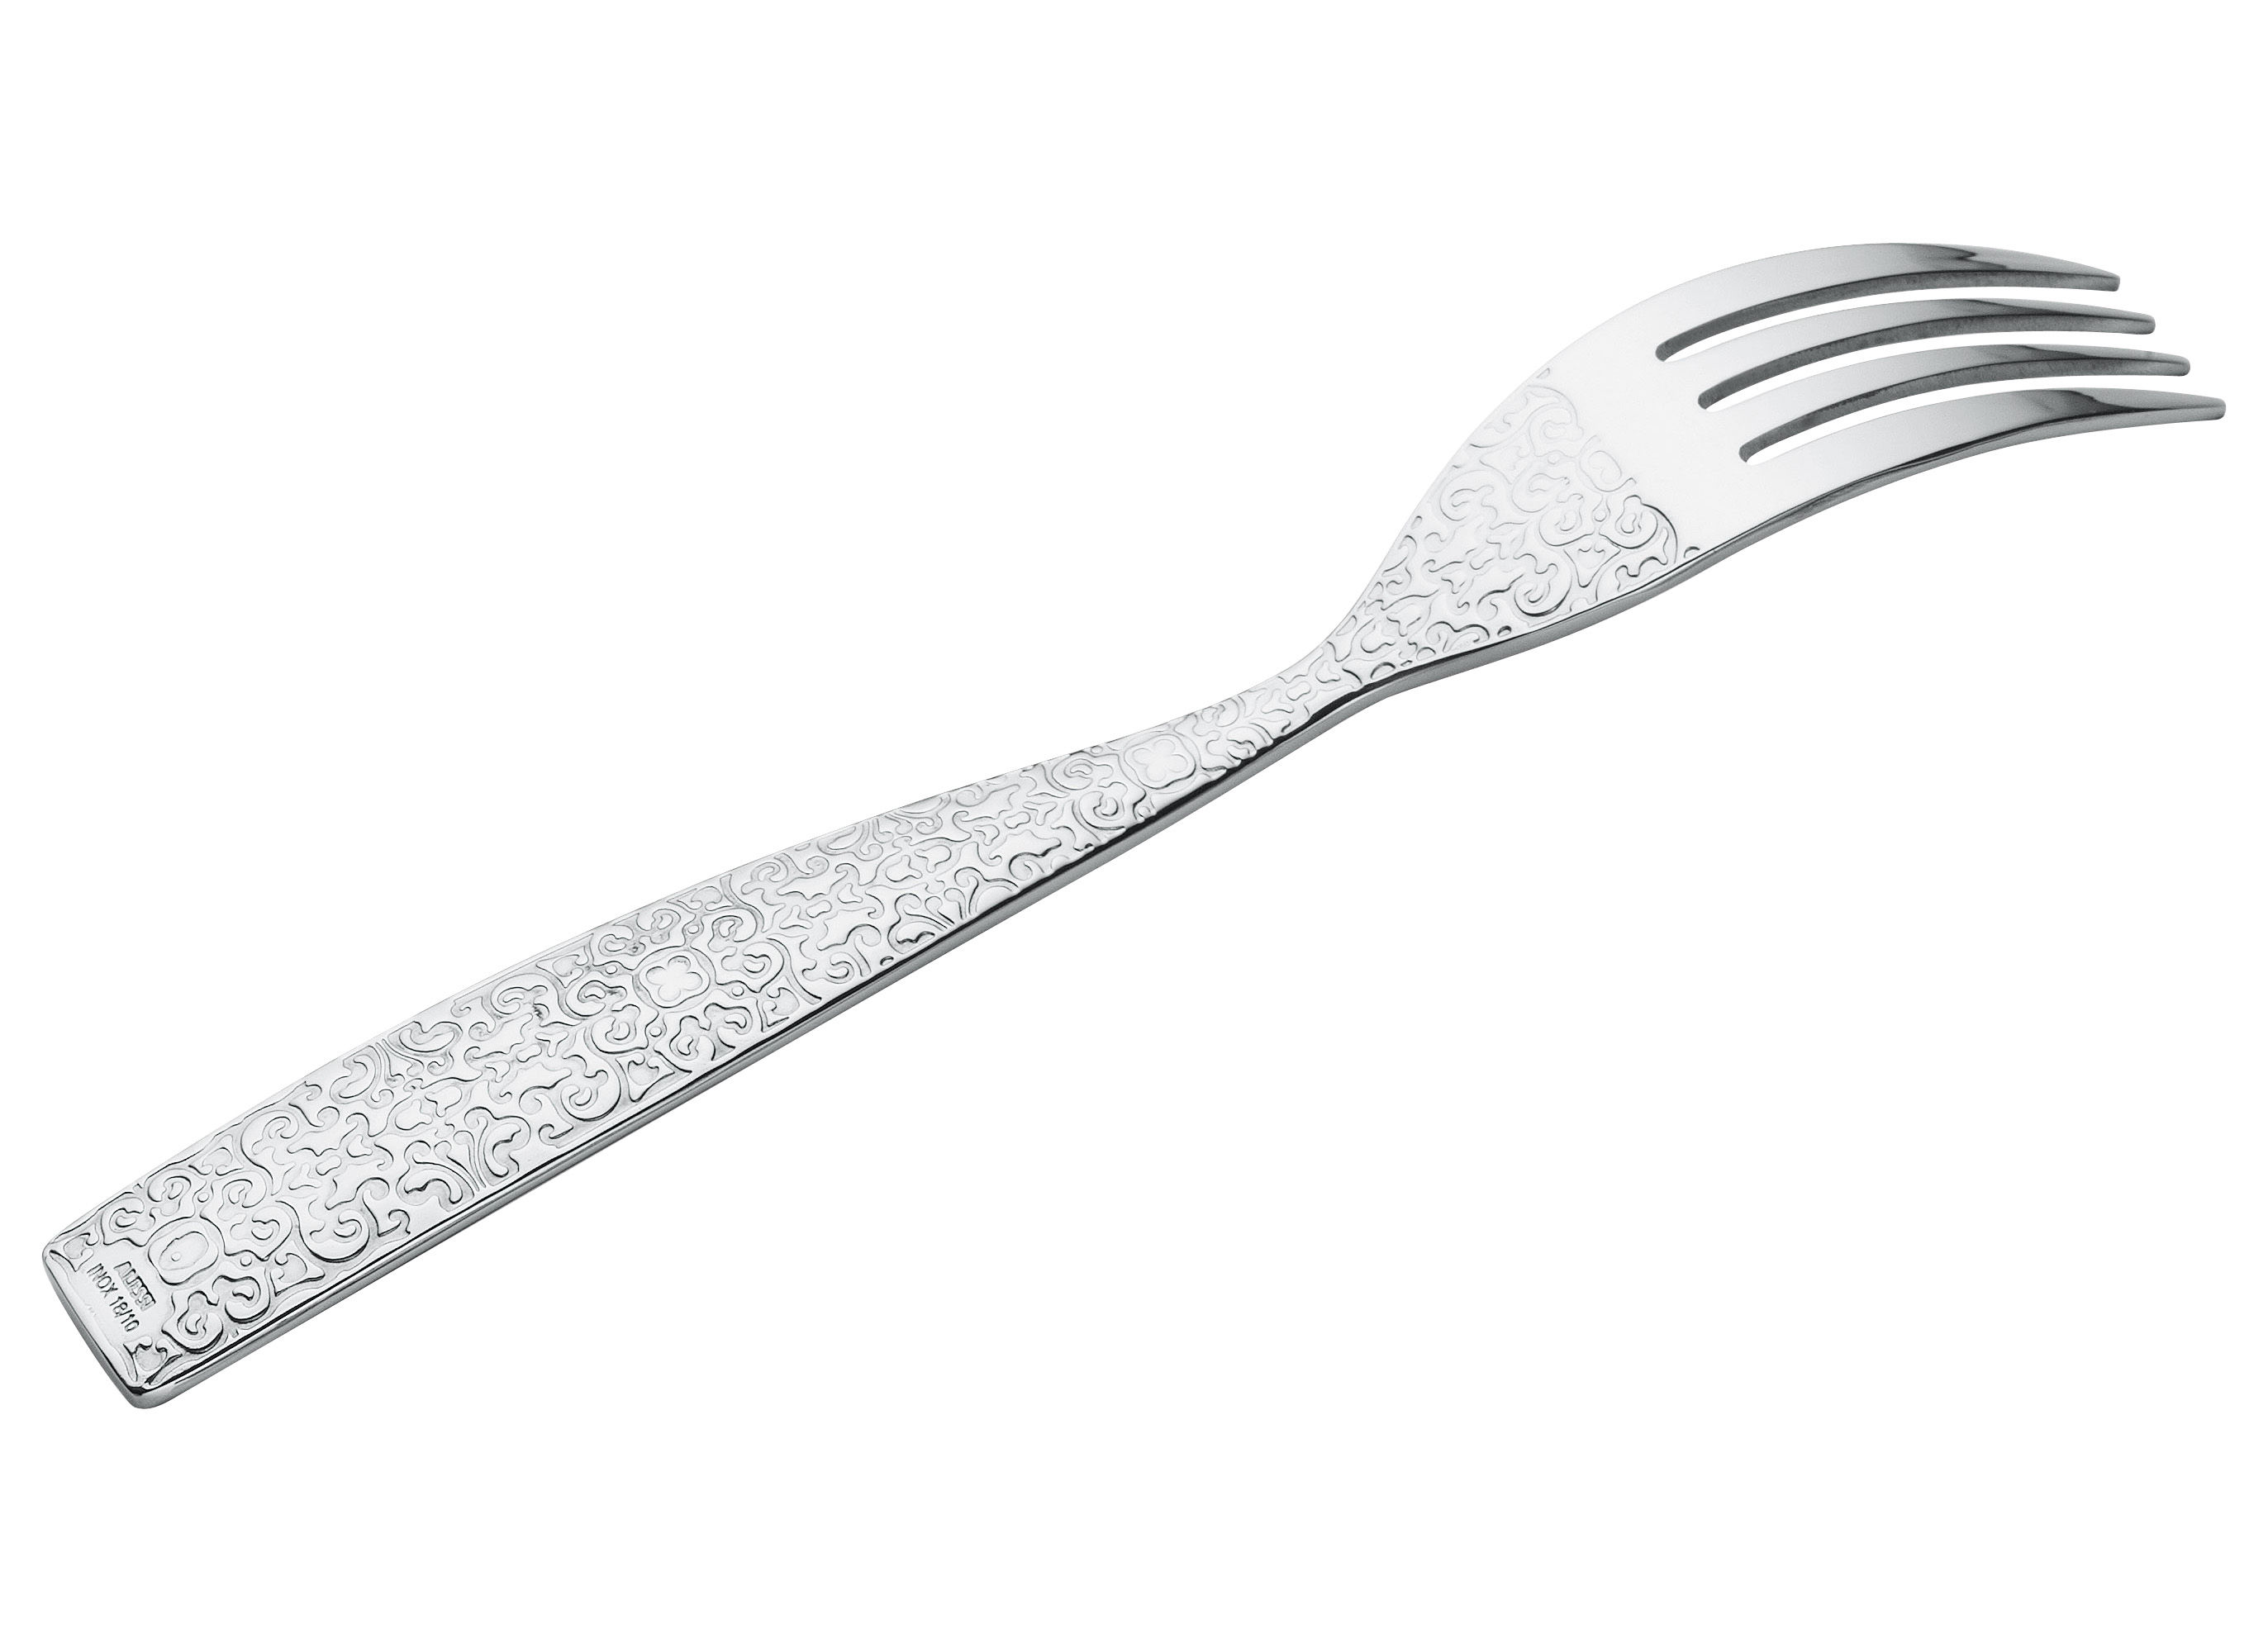 Tableware - Cutlery - Dressed Fork - Table fork by Alessi - Mirror polished steel - Stainless steel